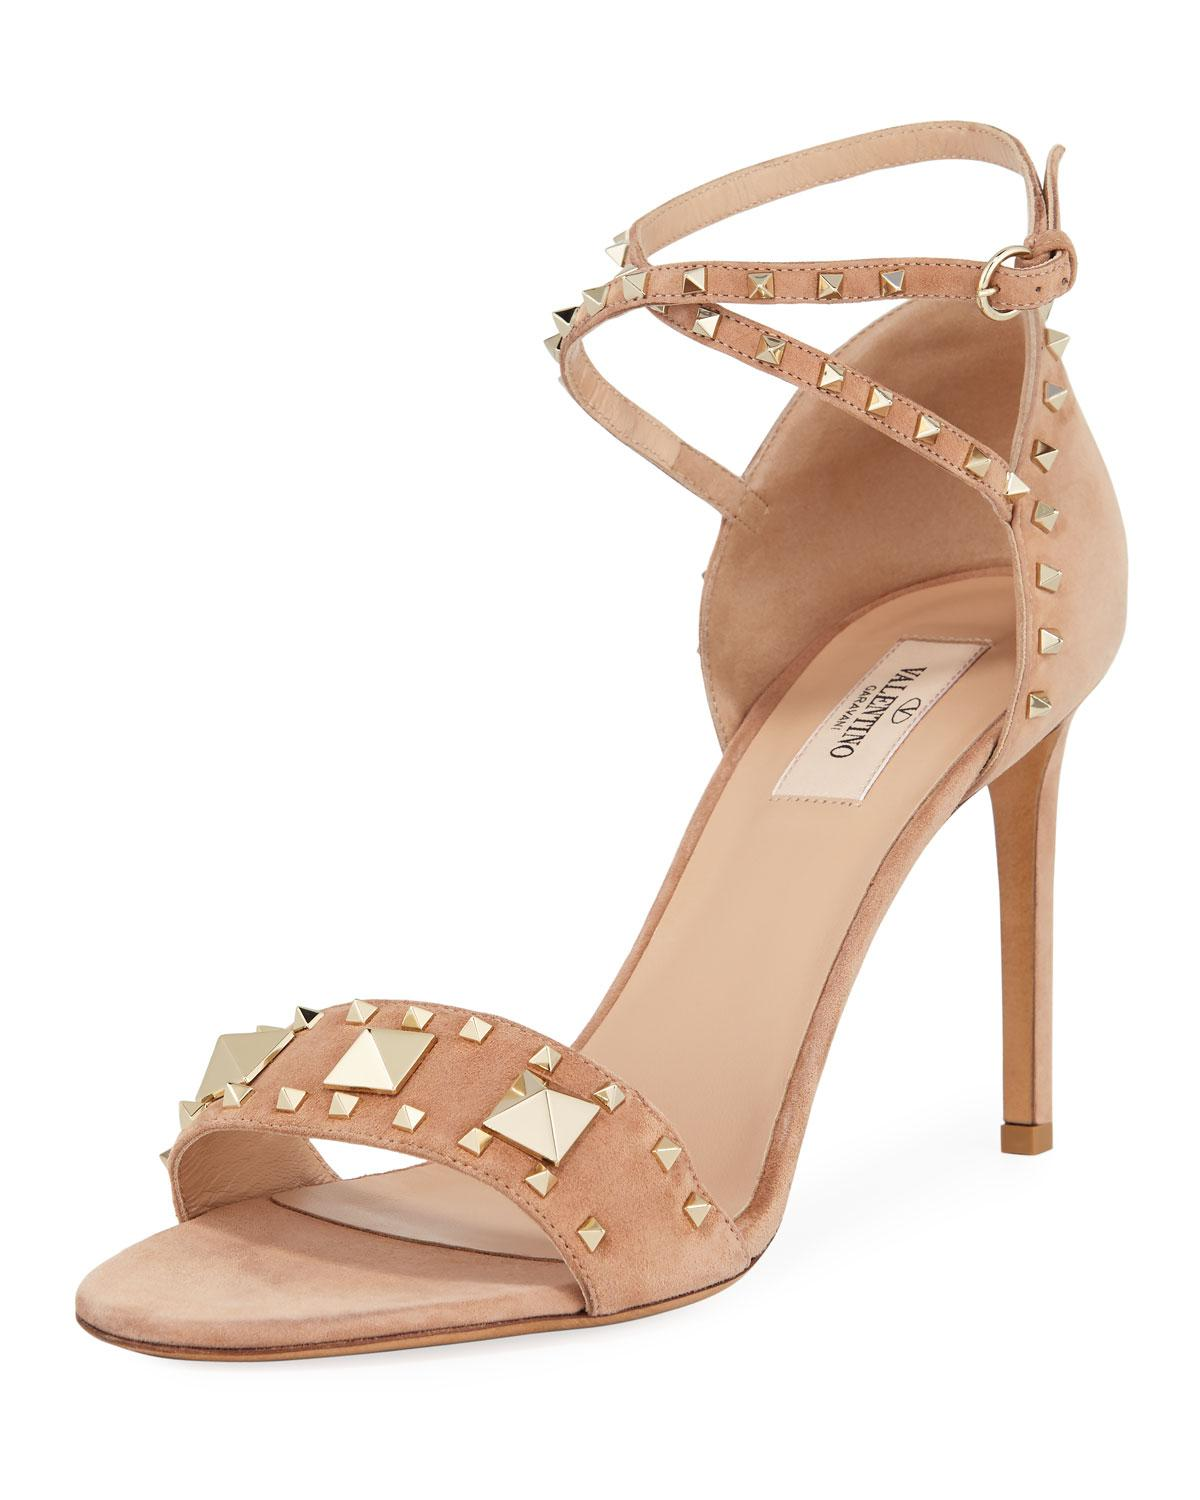 75232c071c93 Lyst - Valentino Rockstud Ankle-wrap Suede Sandals in Natural